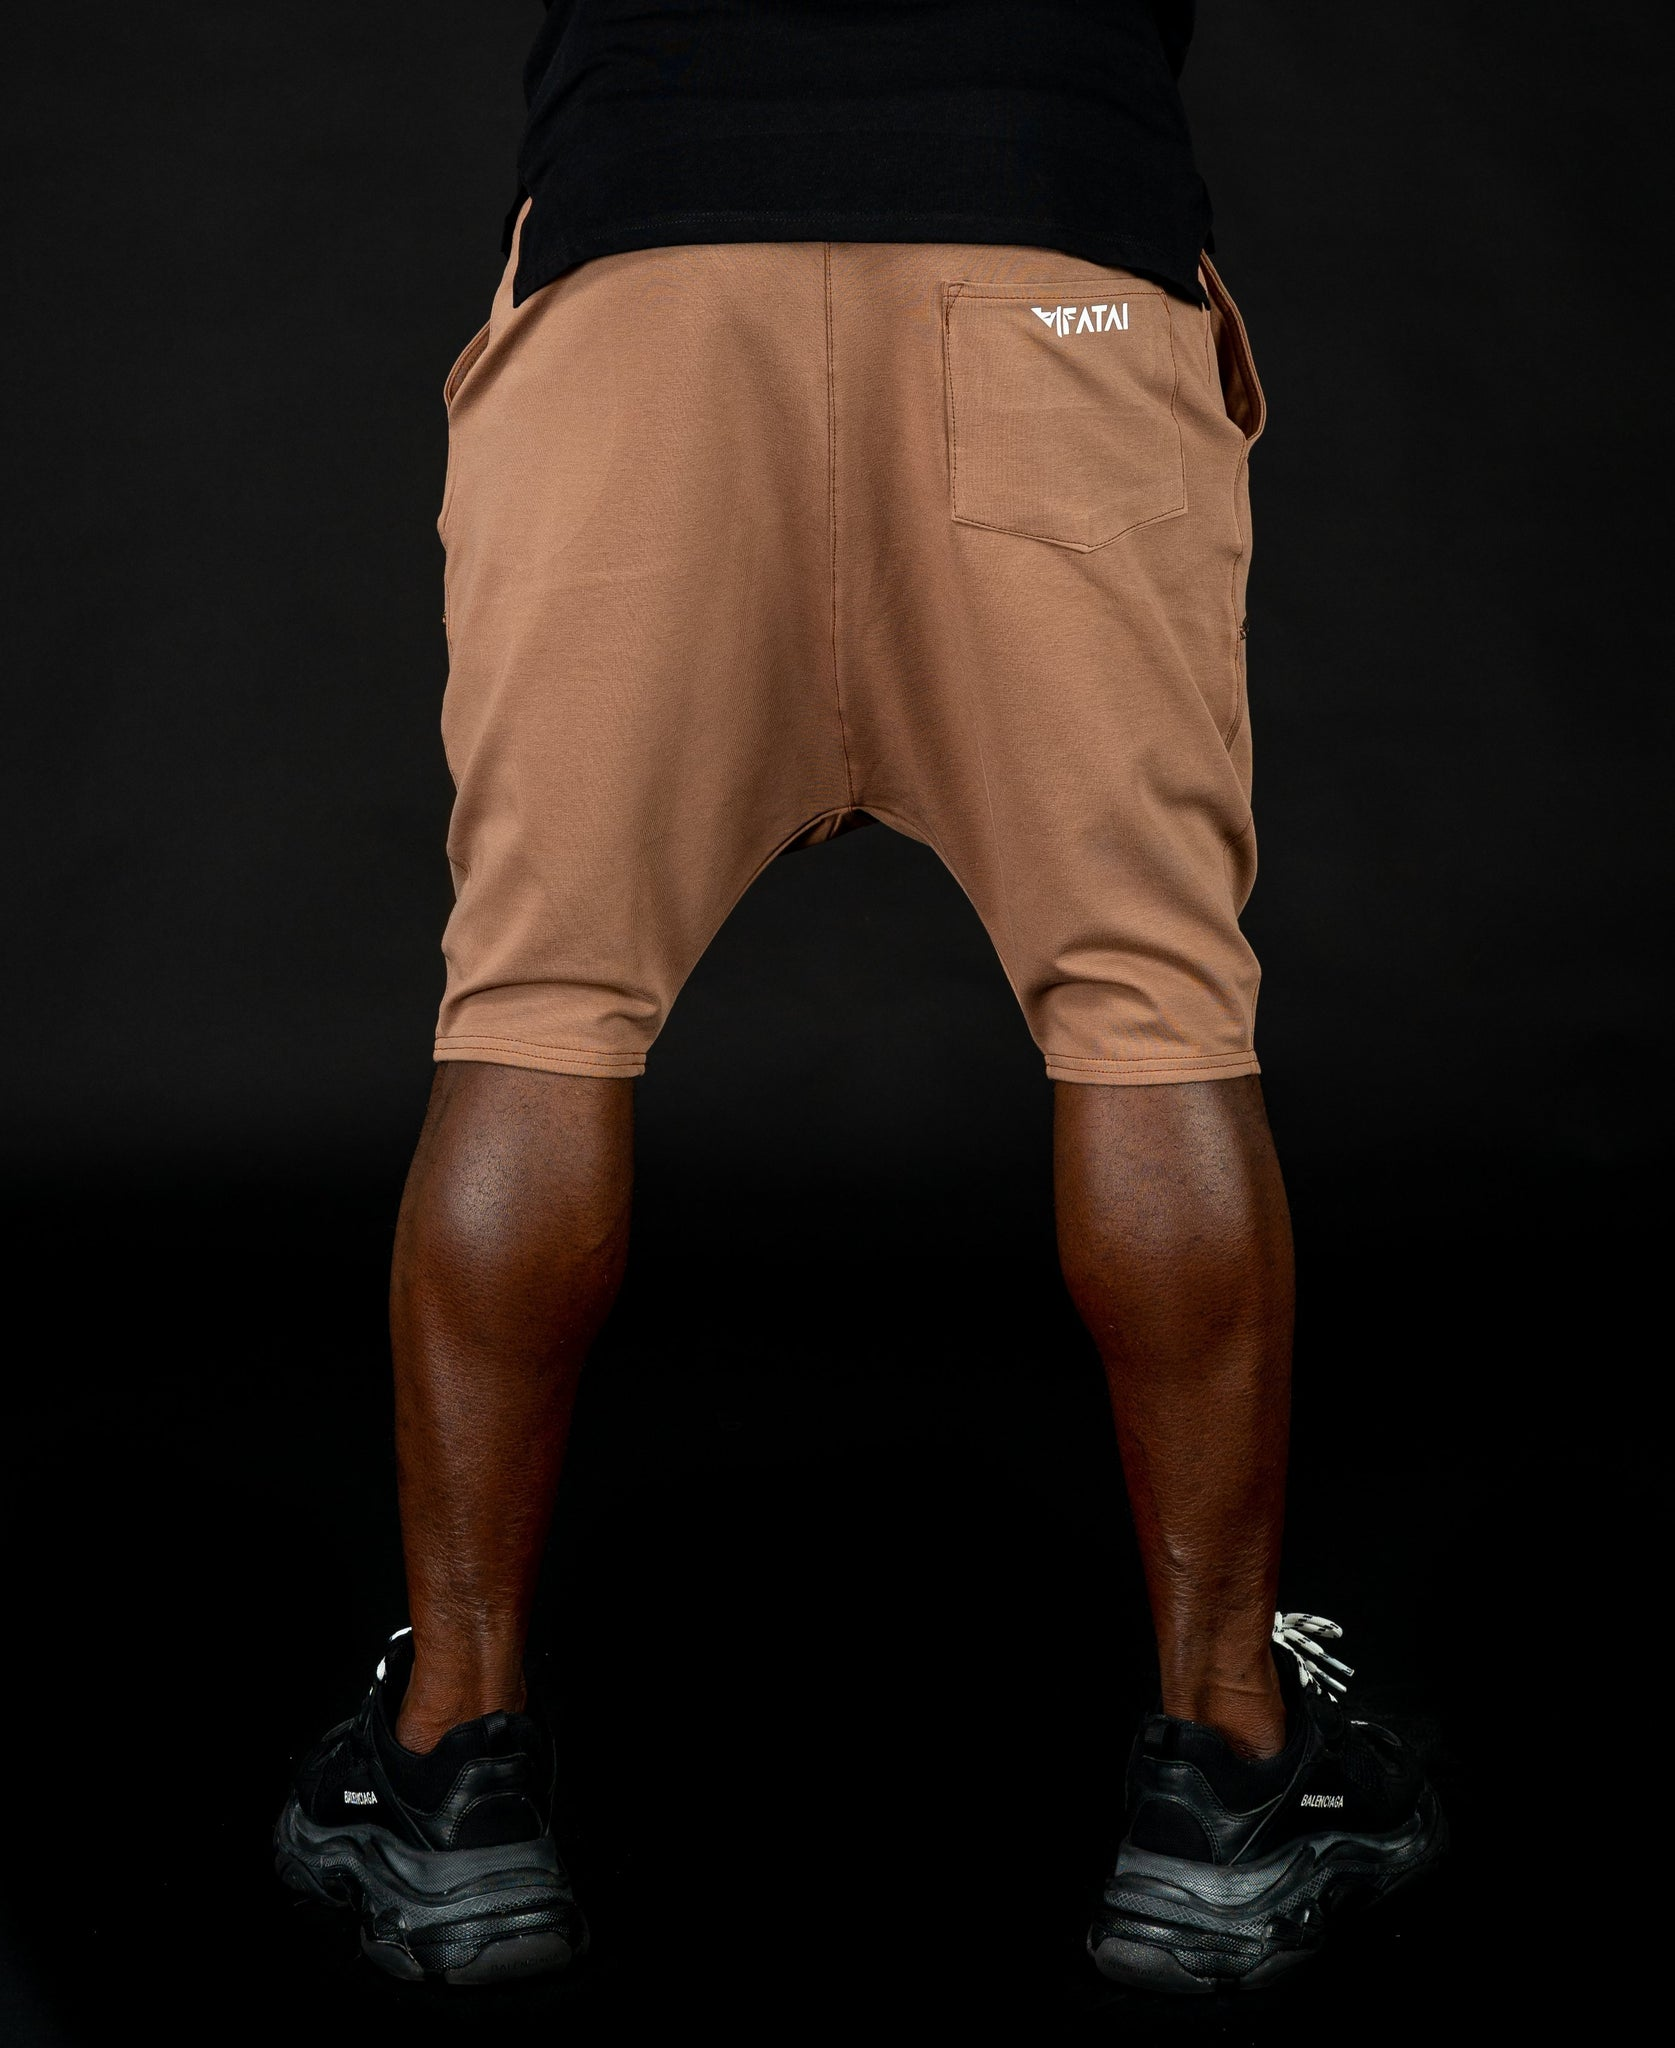 Short Brown Trousers with black sewing - Fatai Style